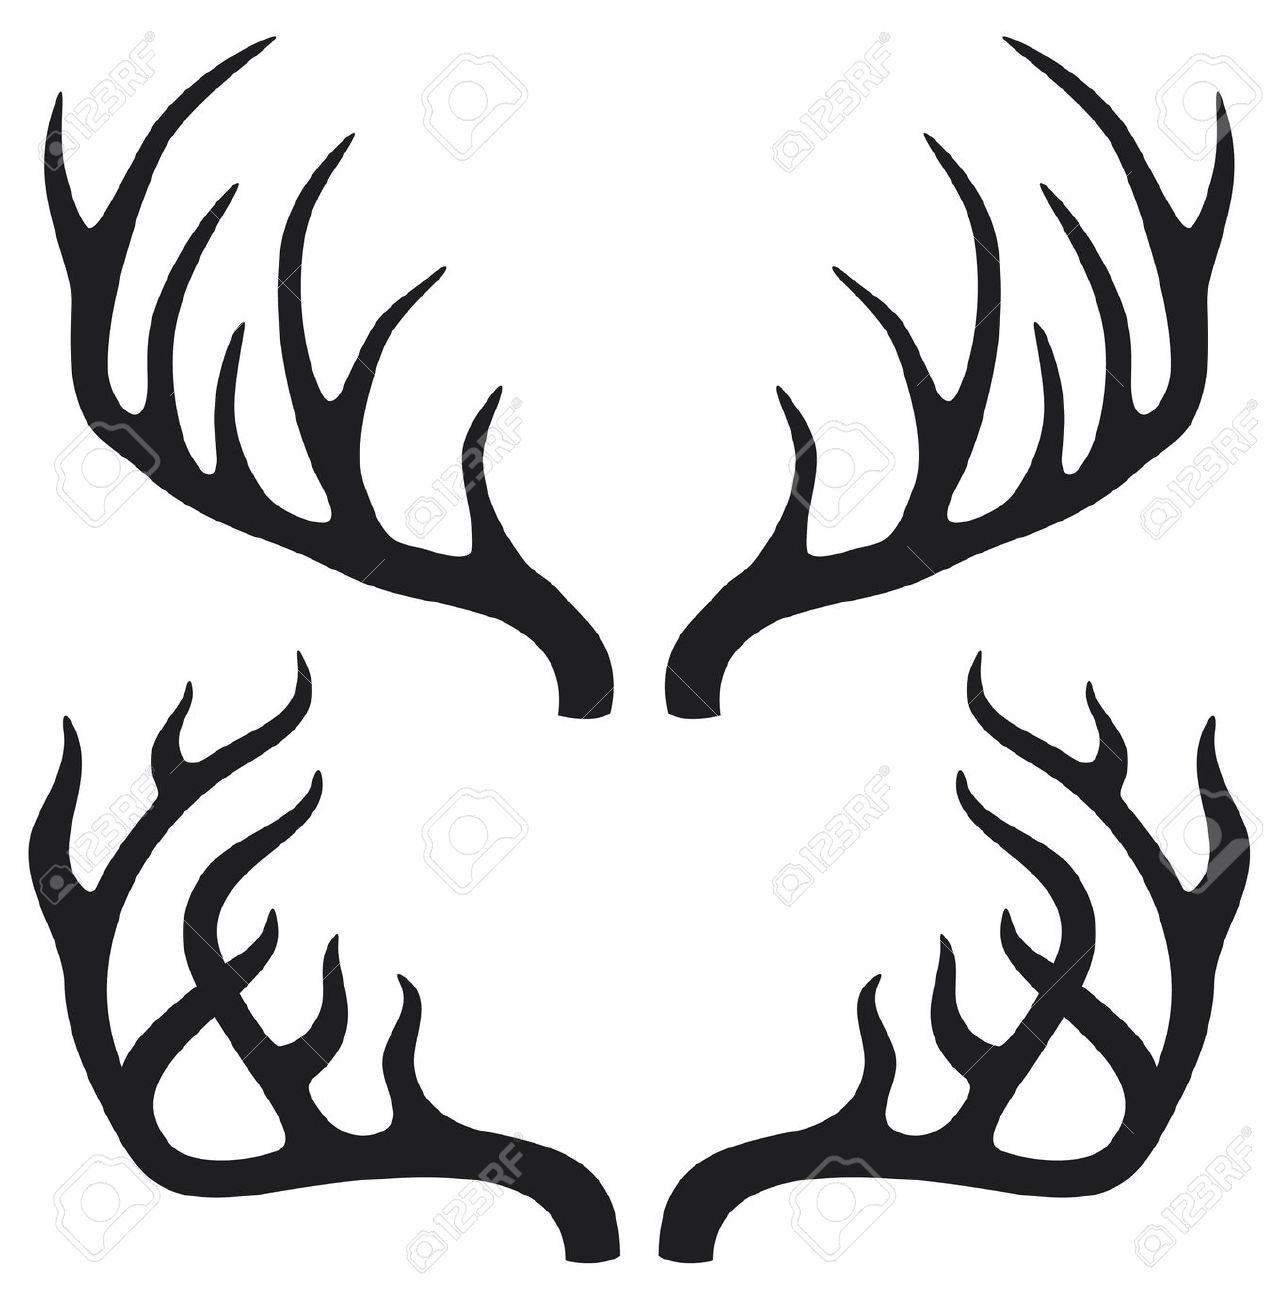 Antlers clipart #18